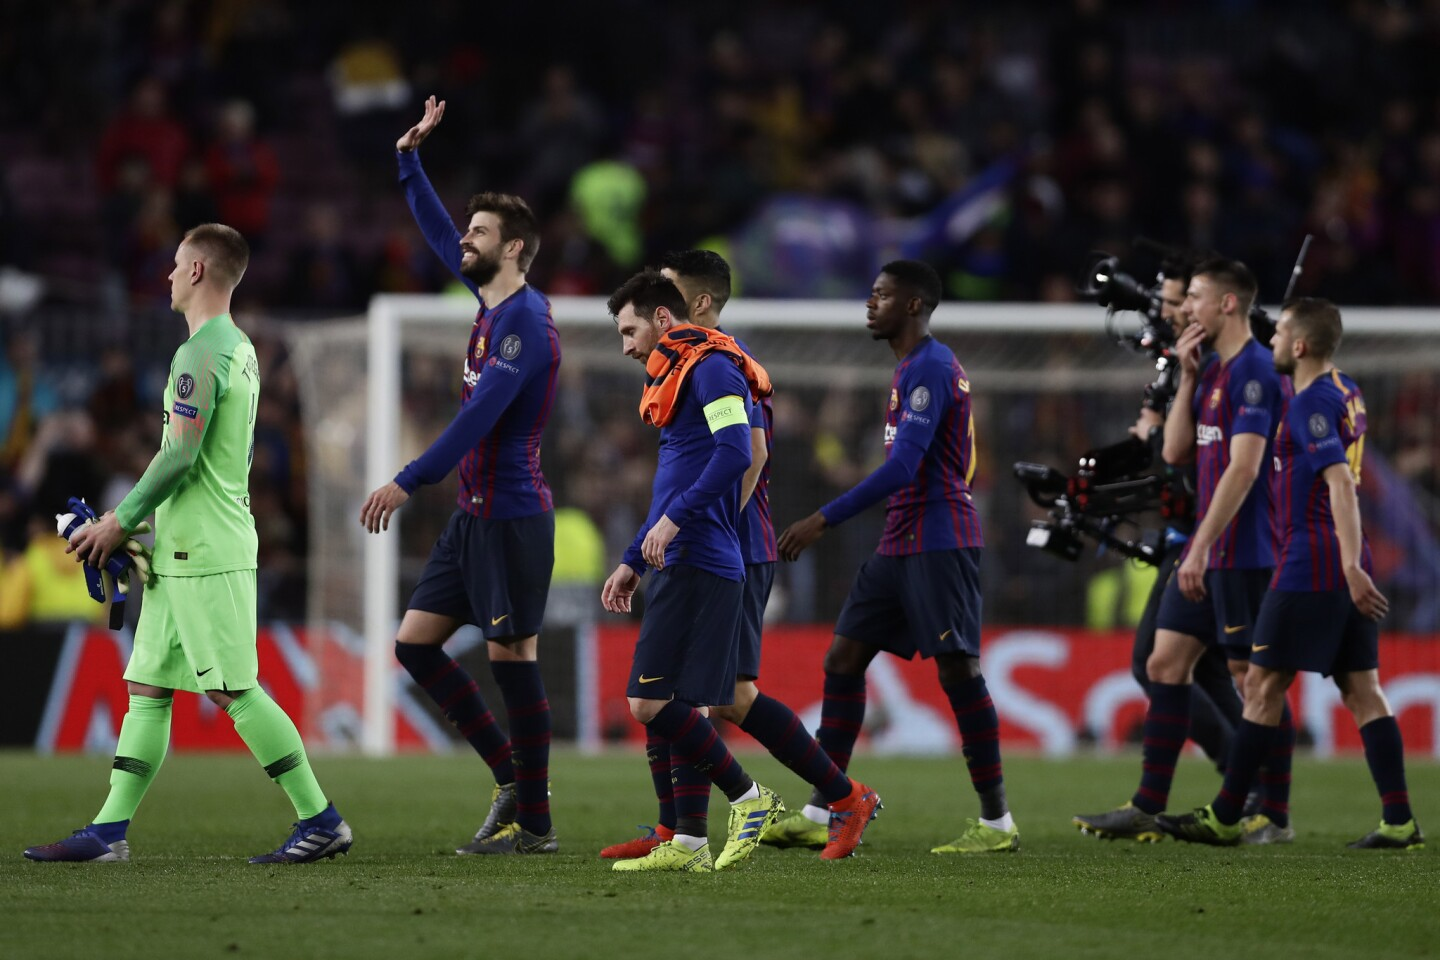 Barcelona defender Gerard Pique, second left, applauds fans at the end of the Champions League round of 16, 2nd leg, soccer match between FC Barcelona and Olympique Lyon at the Camp Nou stadium in Barcelona, Spain, Wednesday, March 13, 2019. (AP Photo/Manu Fernandez)